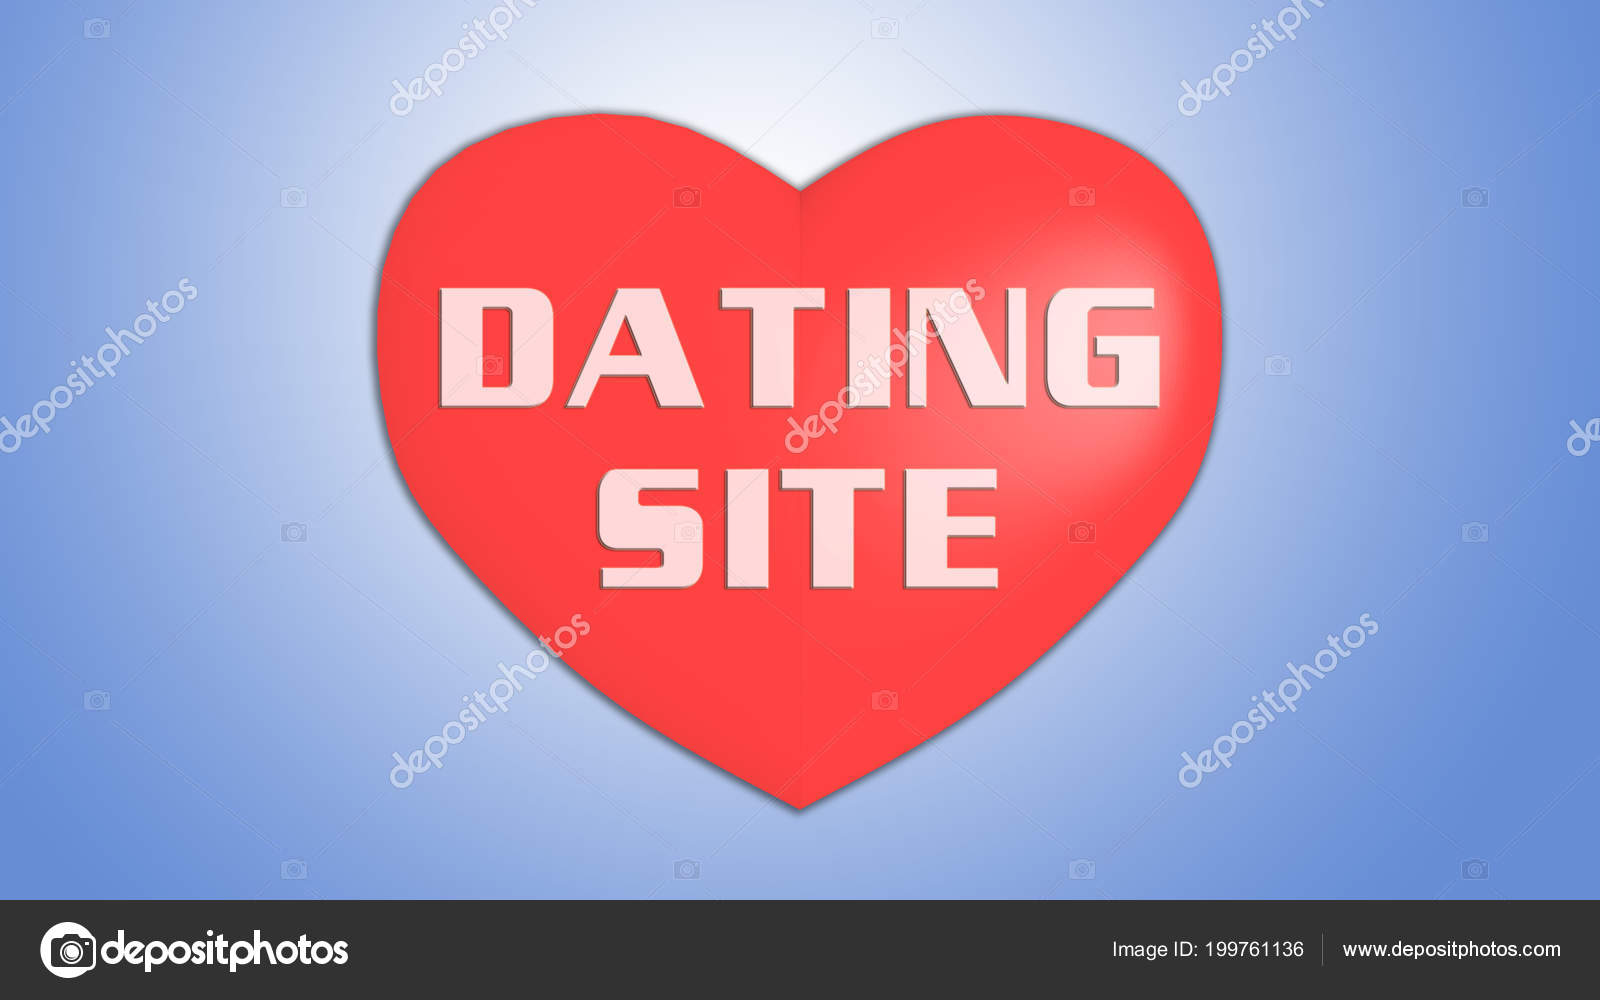 Title for dating site